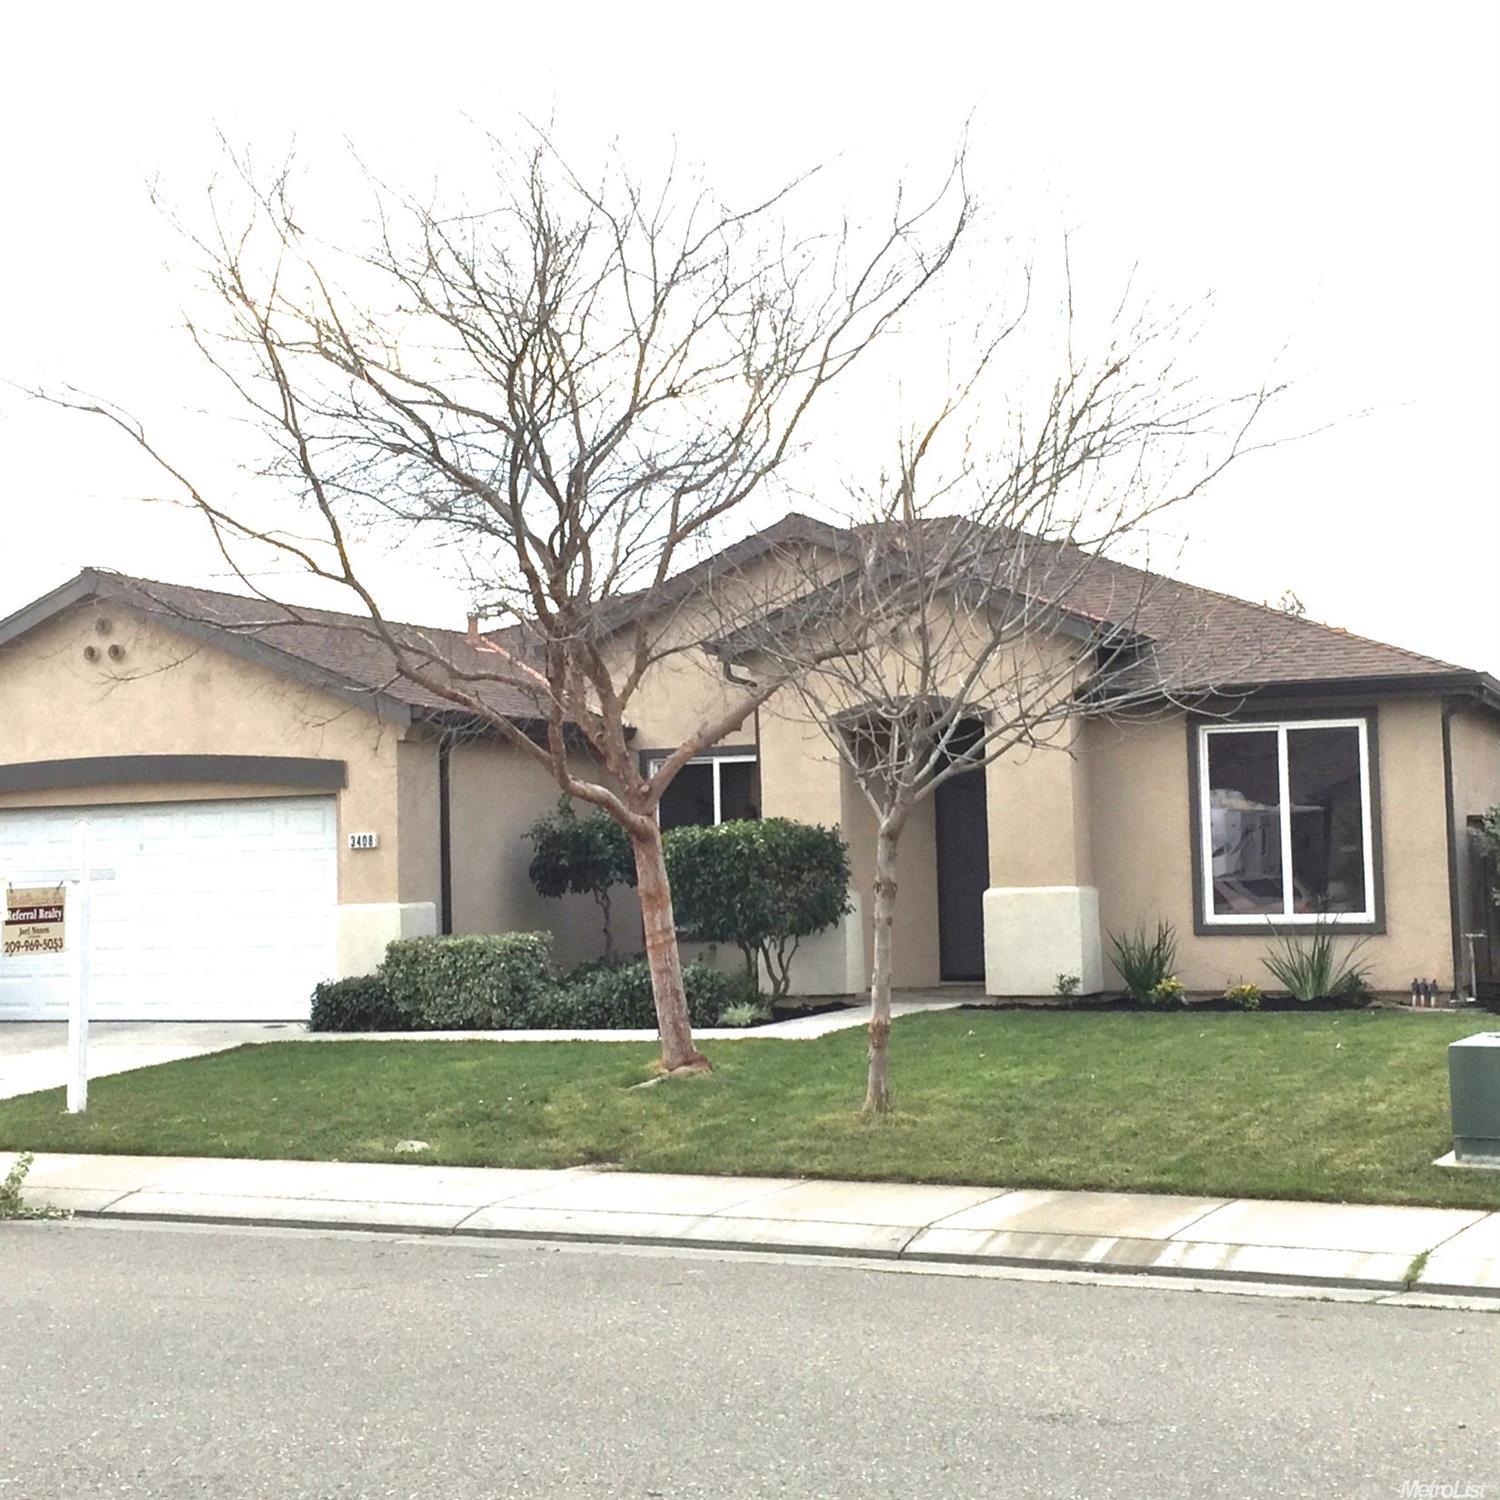 3408 Saints Way, Modesto, CA